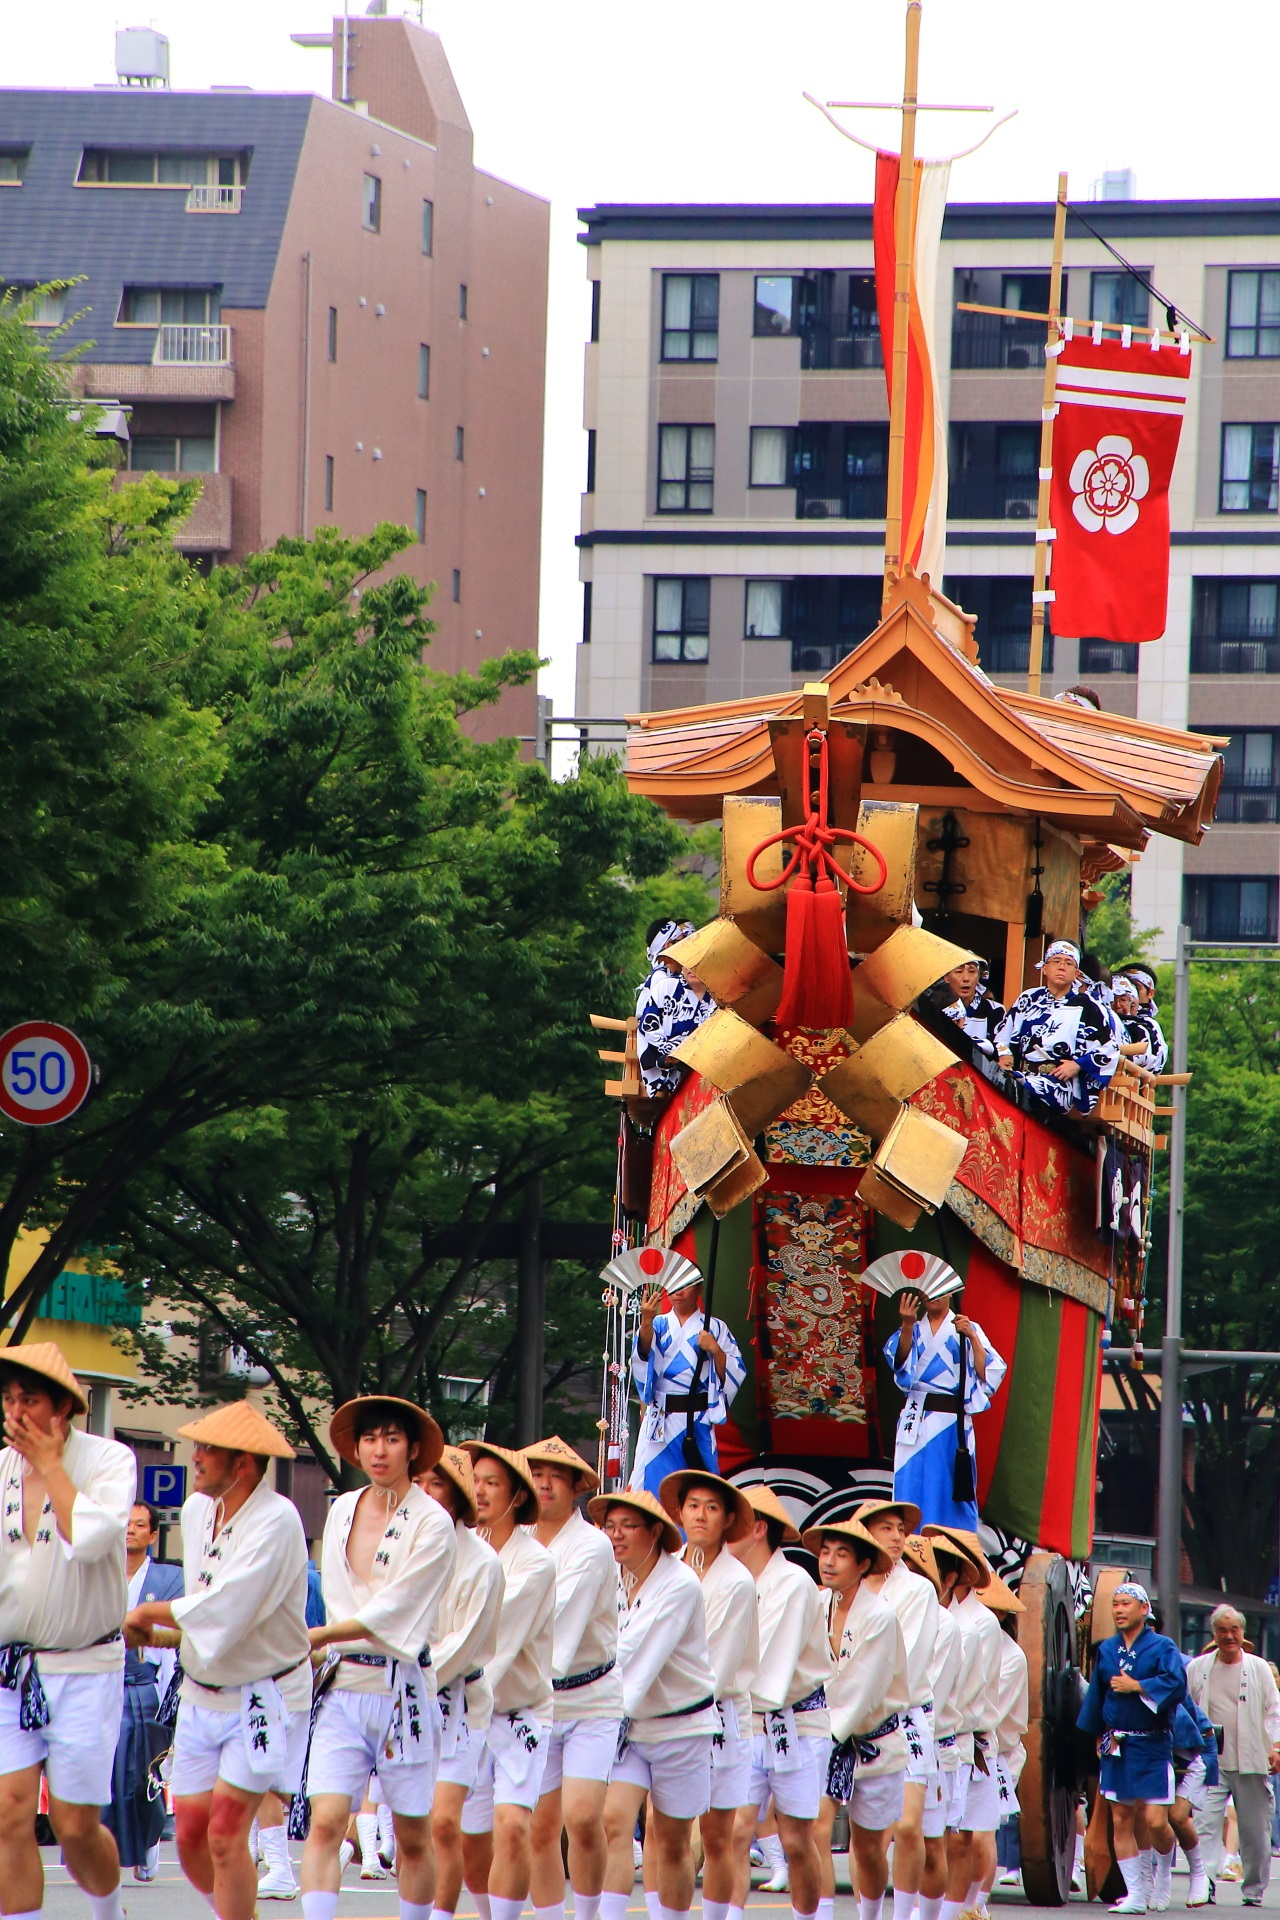 Ohfune-Hoko appeared in the Yama-Hoko Junko Cruise of the Kyoto Gion-Matsuri Festival